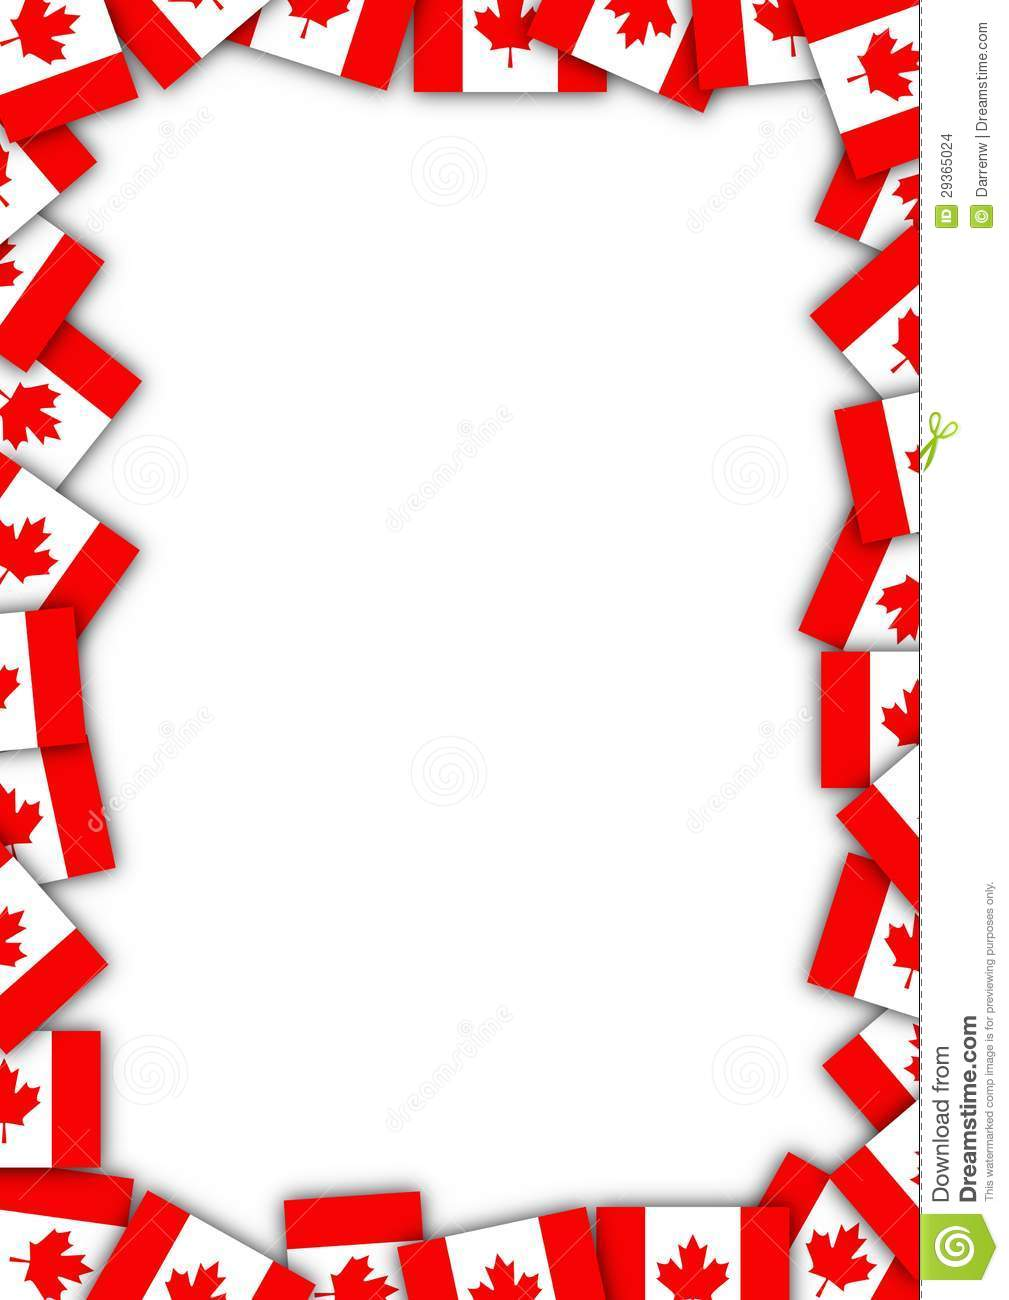 Canada Flag Border Stock Images - Image: 29365024